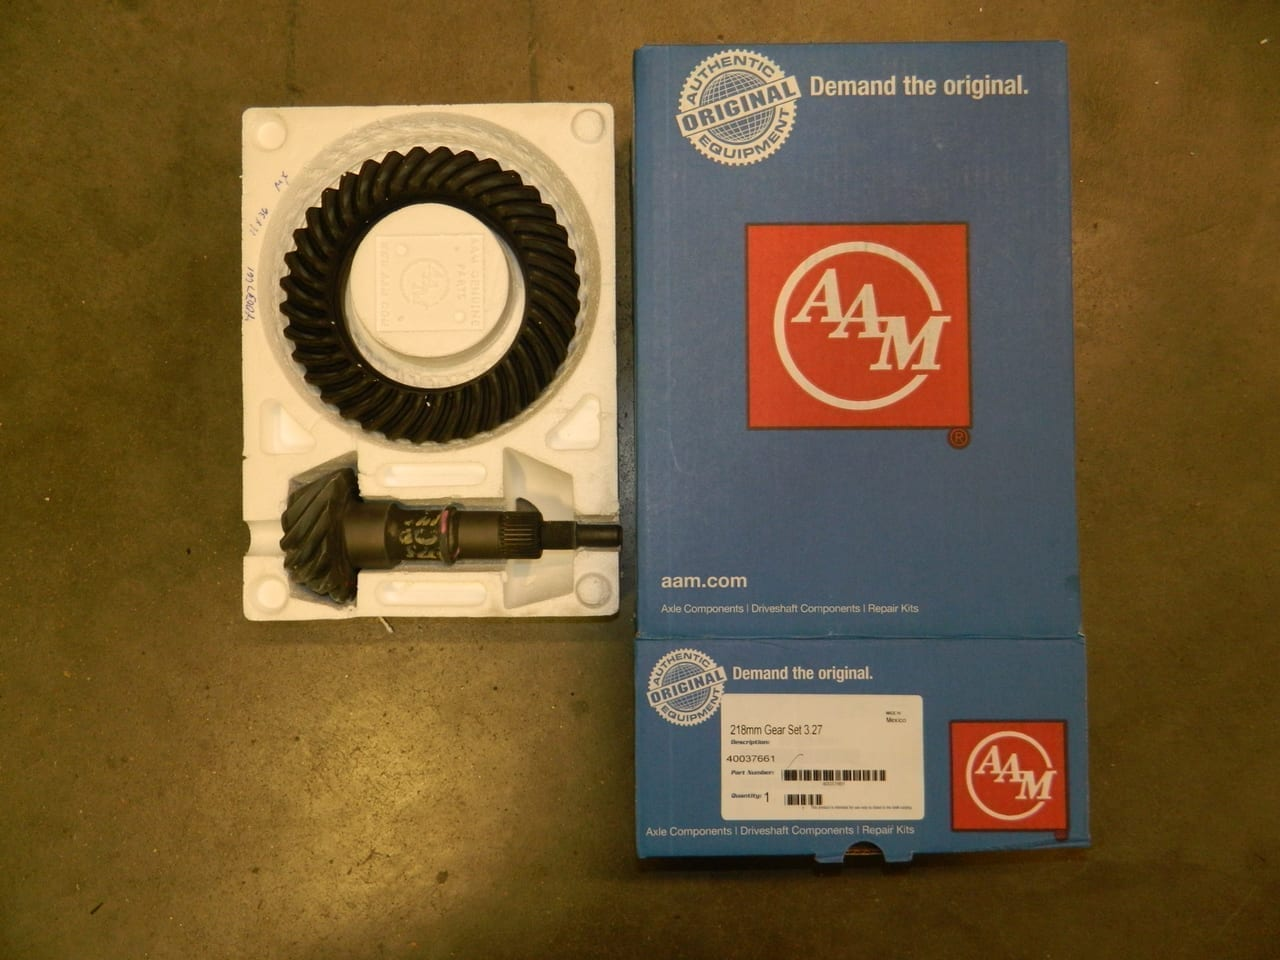 2010+ Camaro 8.6 IRS Rear Differential Ring & Pinion Gear Set 3:27 218MM Zata Chevy AAM